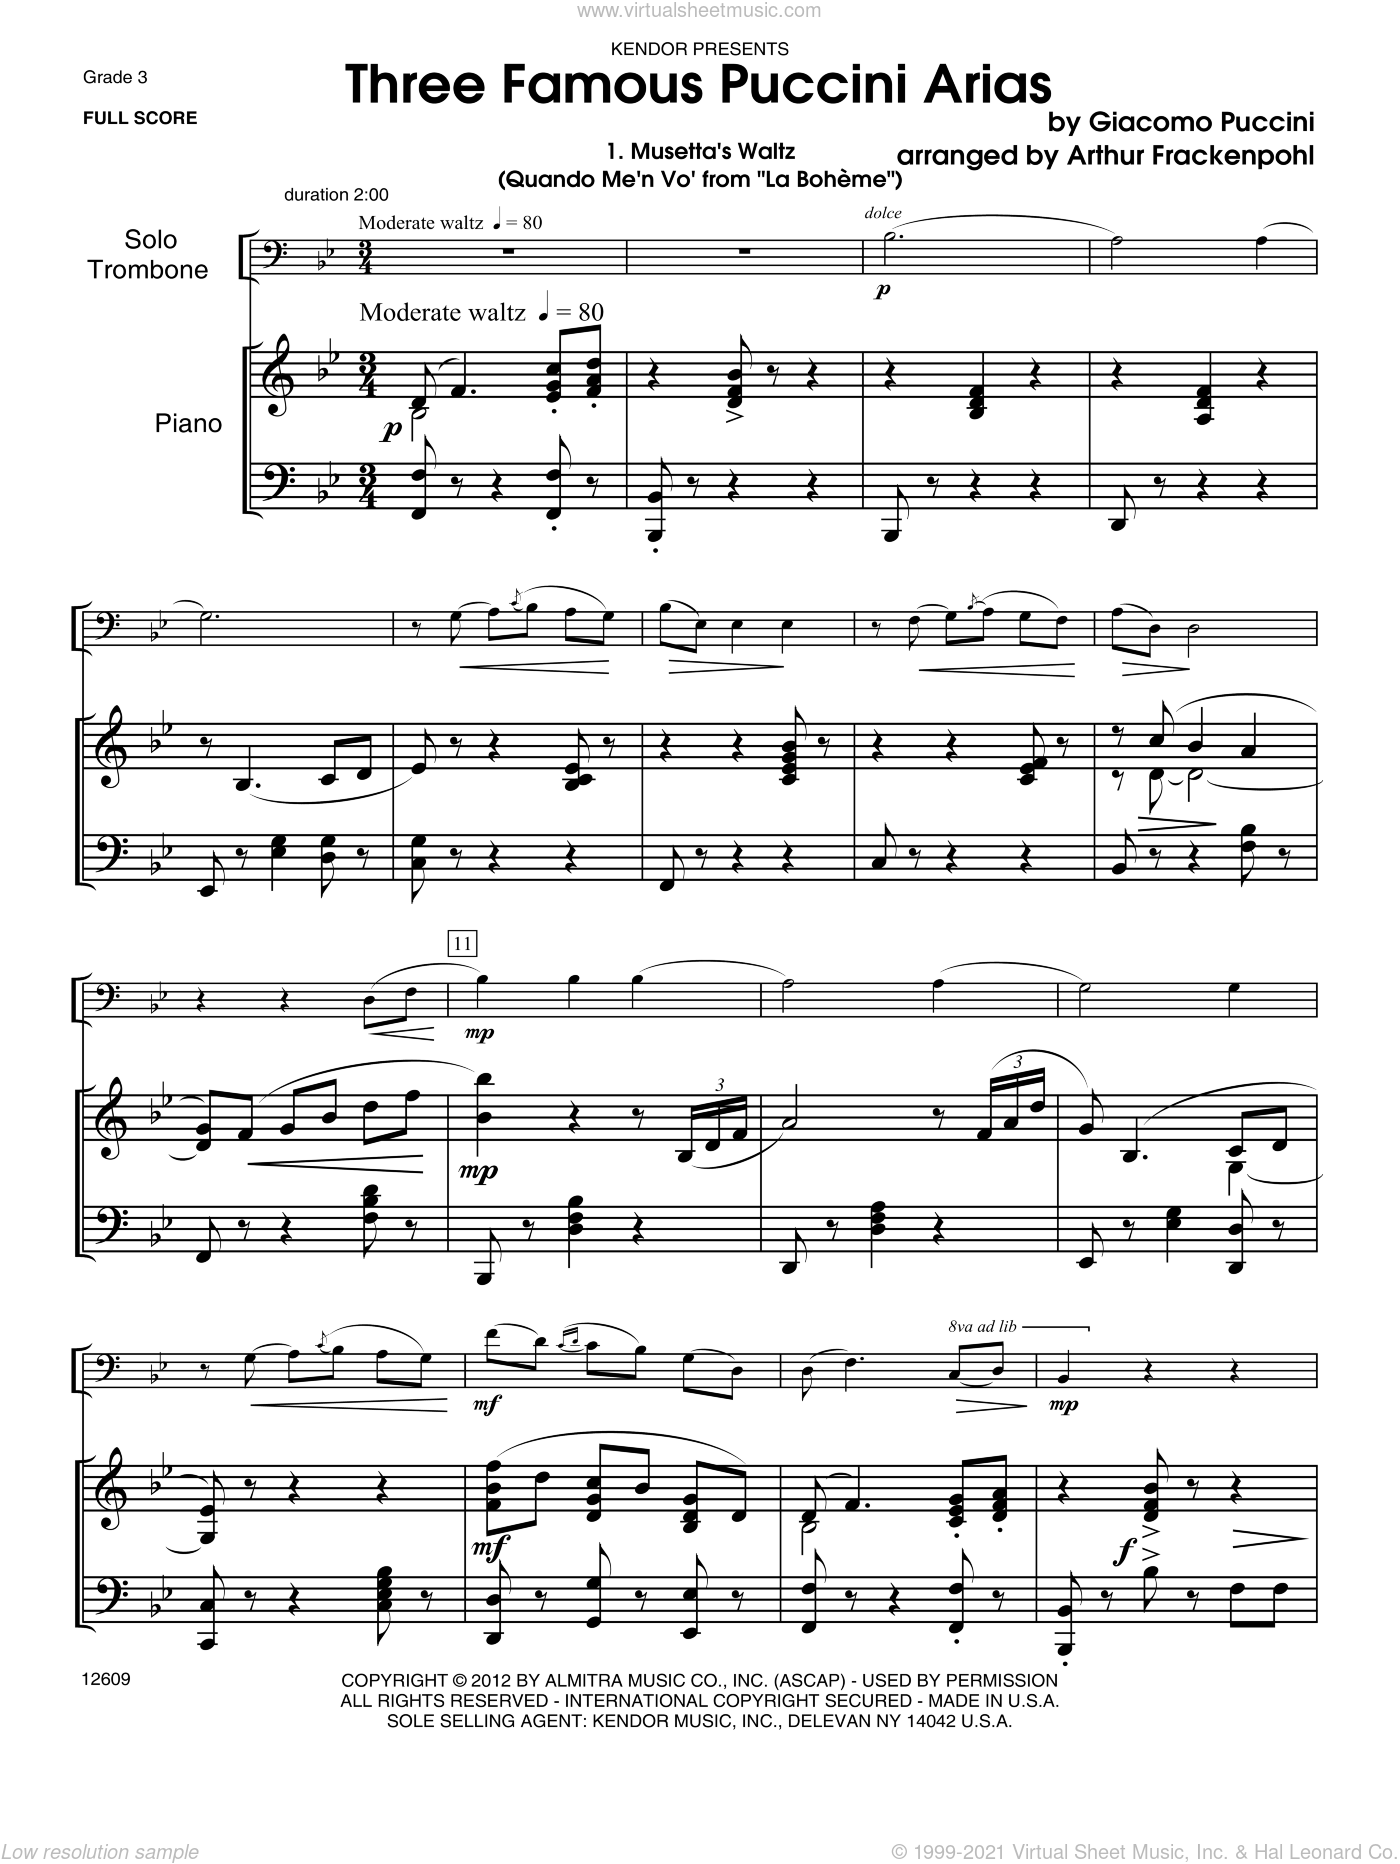 Three Famous Puccini Arias sheet music for trombone and piano (piano/score) by Giacomo Puccini